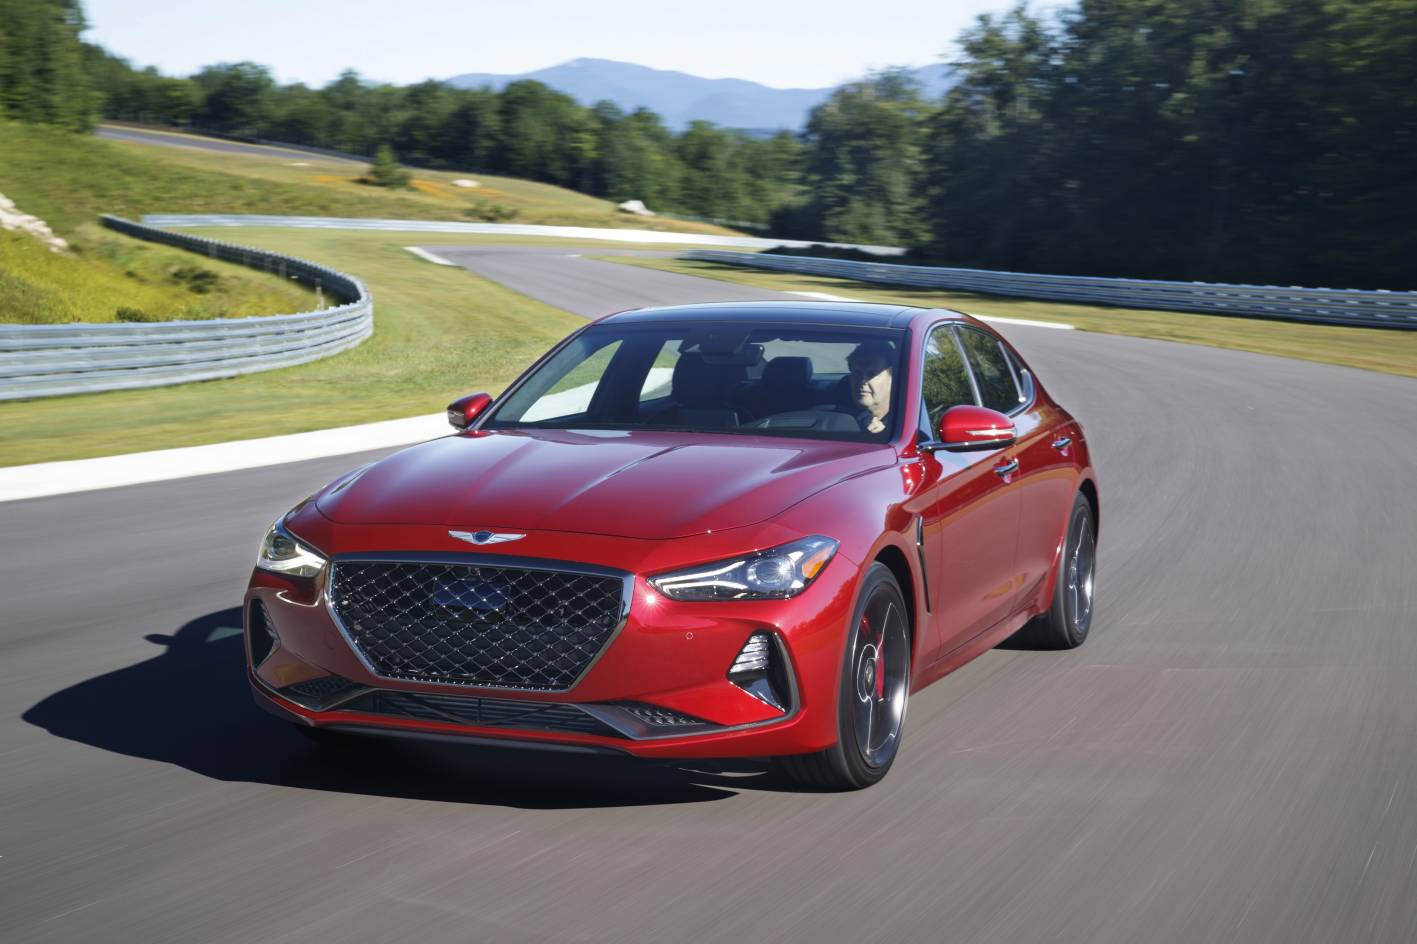 The Genesis G70 sedan arrives with high customer support and two impressive engine choices